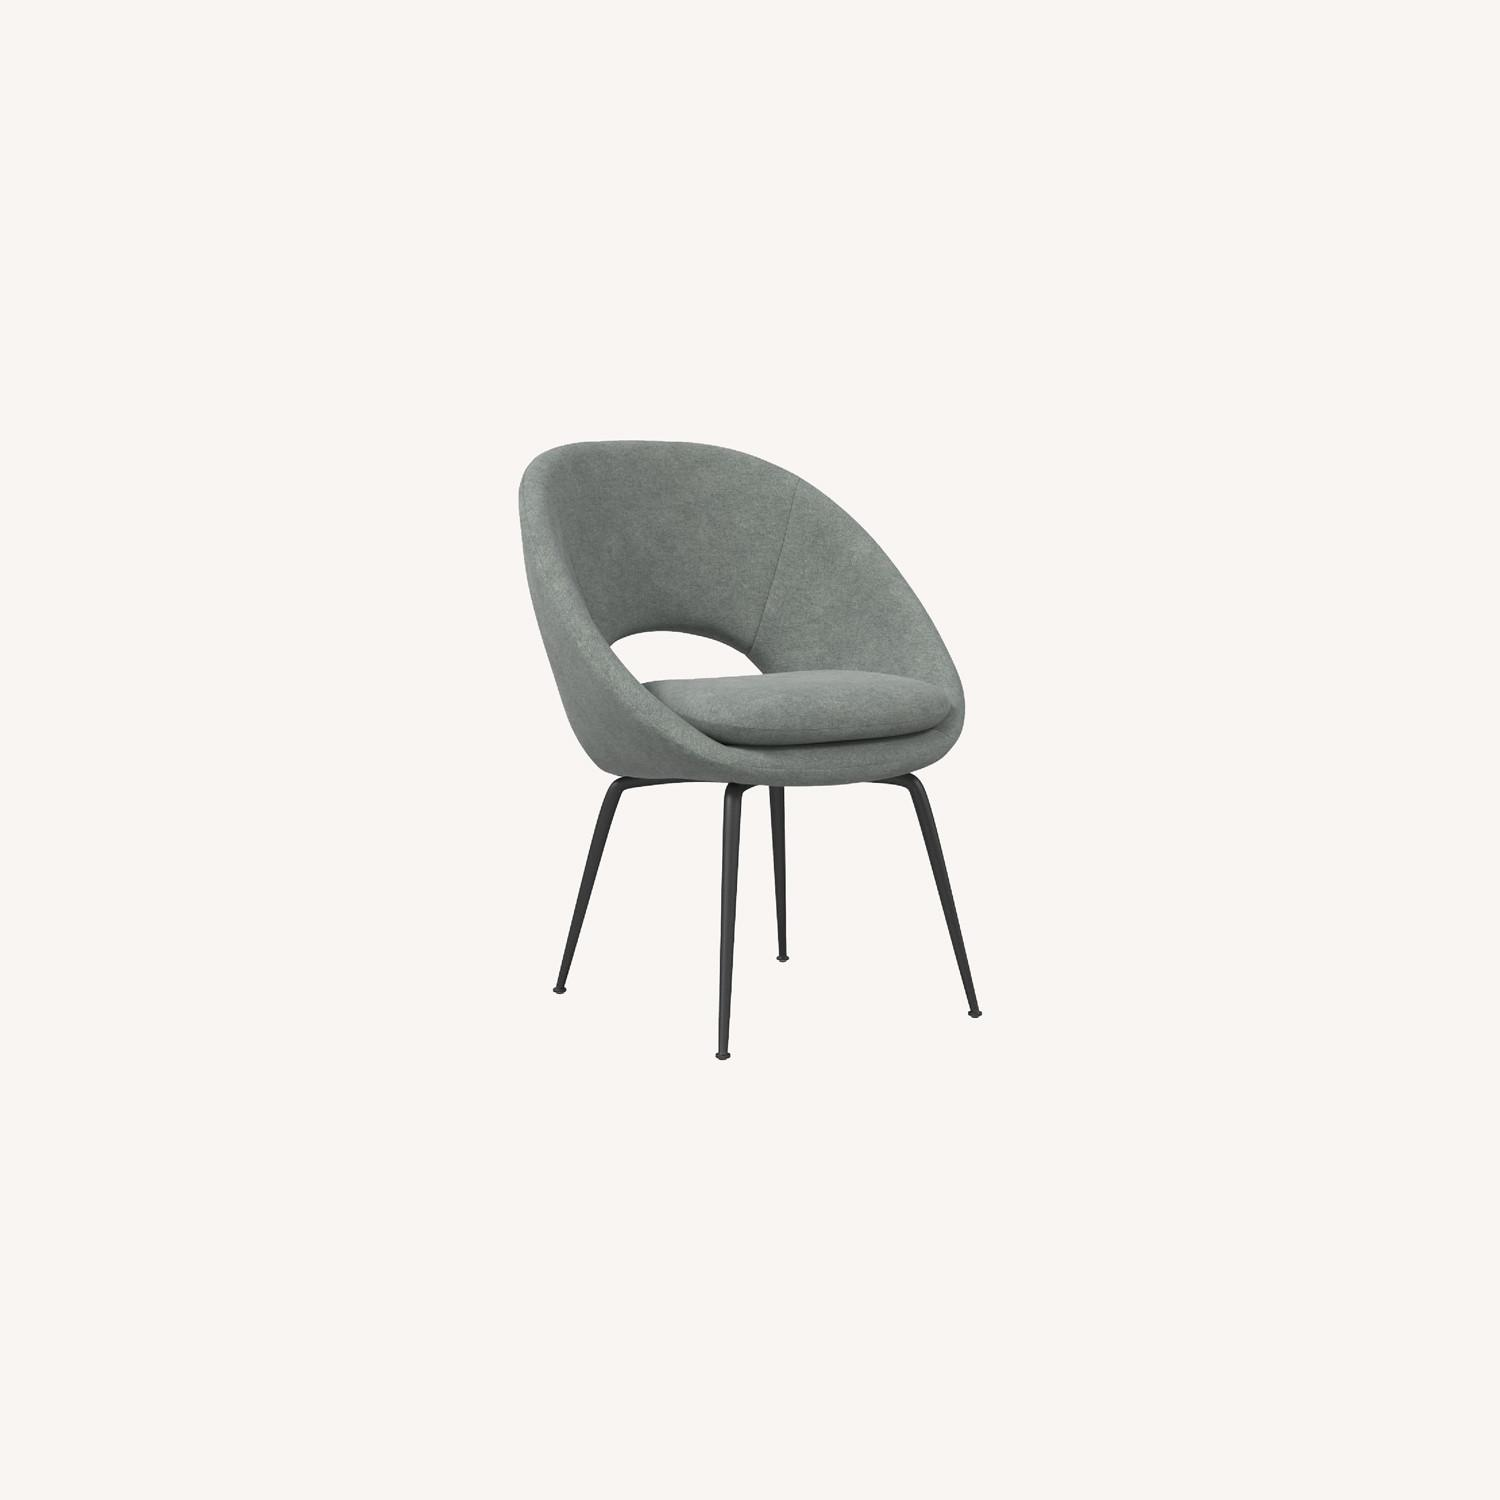 West Elm Orb Dining Chairs - image-0